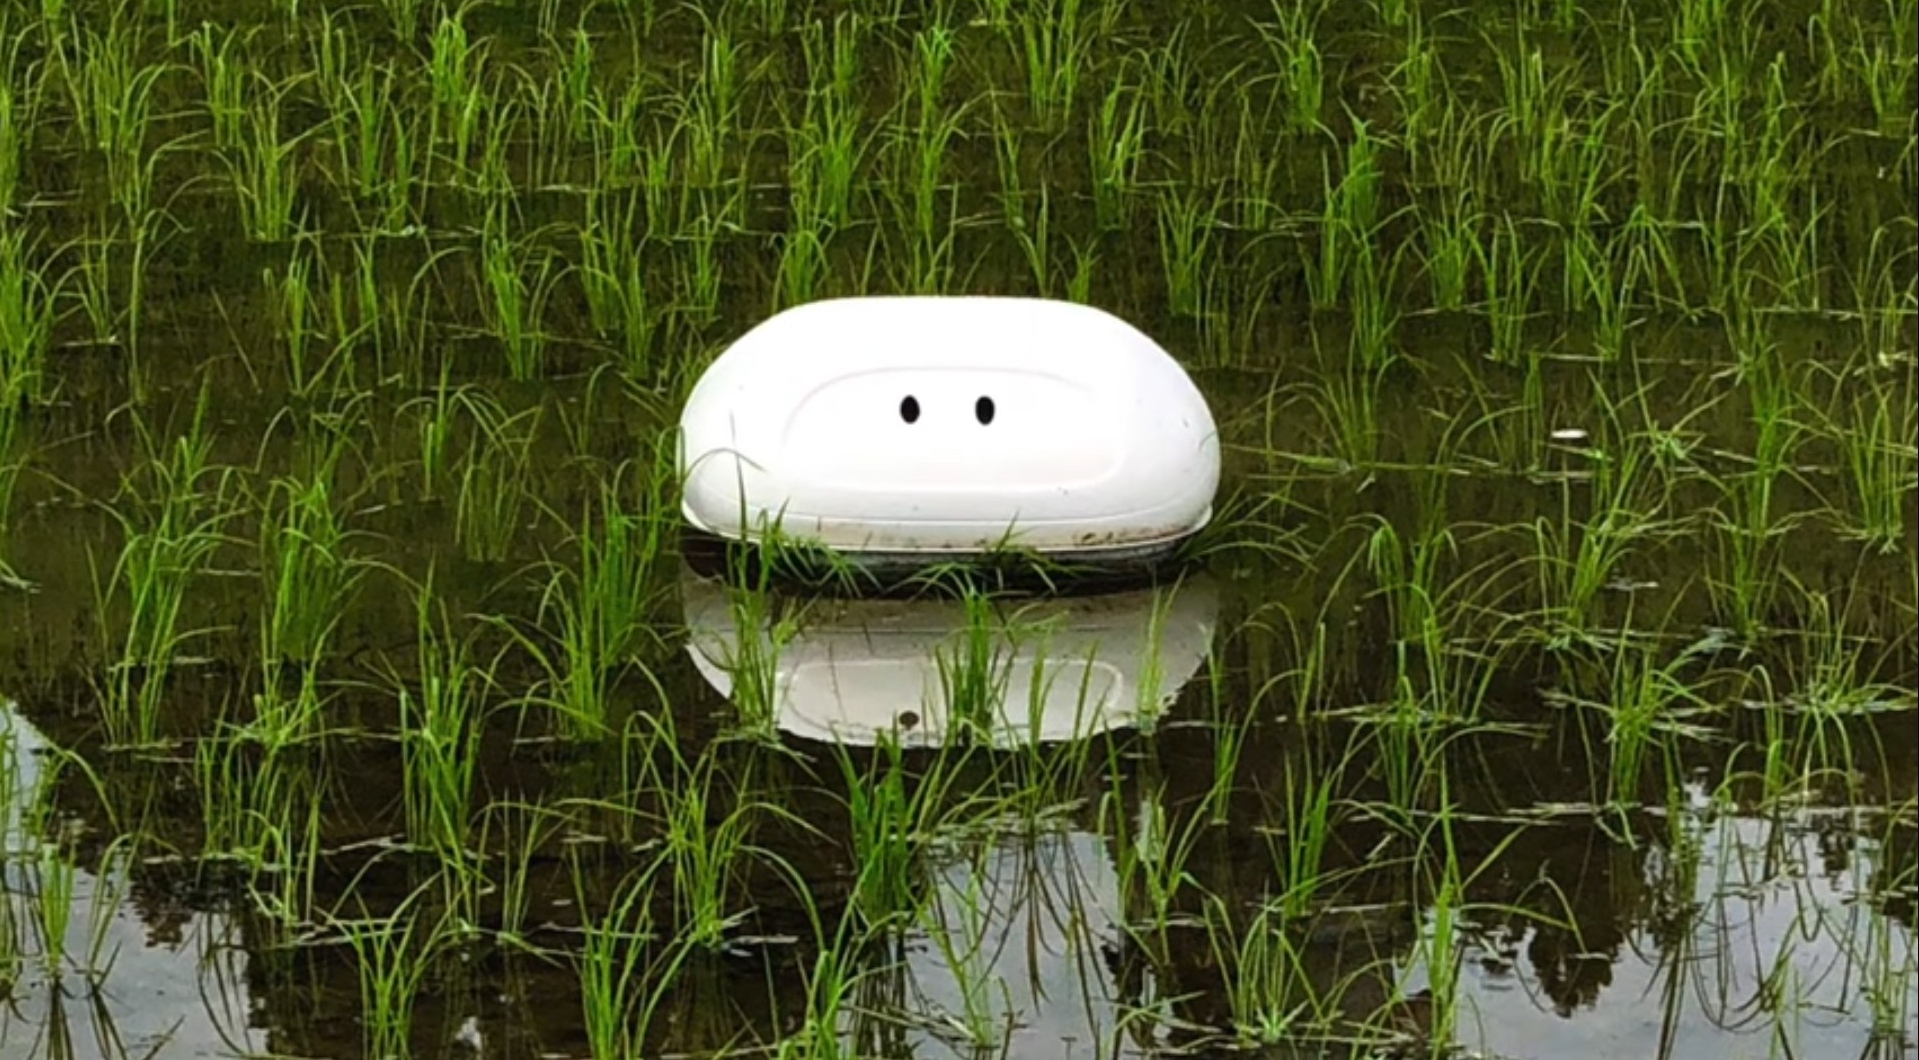 Aigamo robot: Nissan's 'Duck' Robot; Helps the Rice Farmers